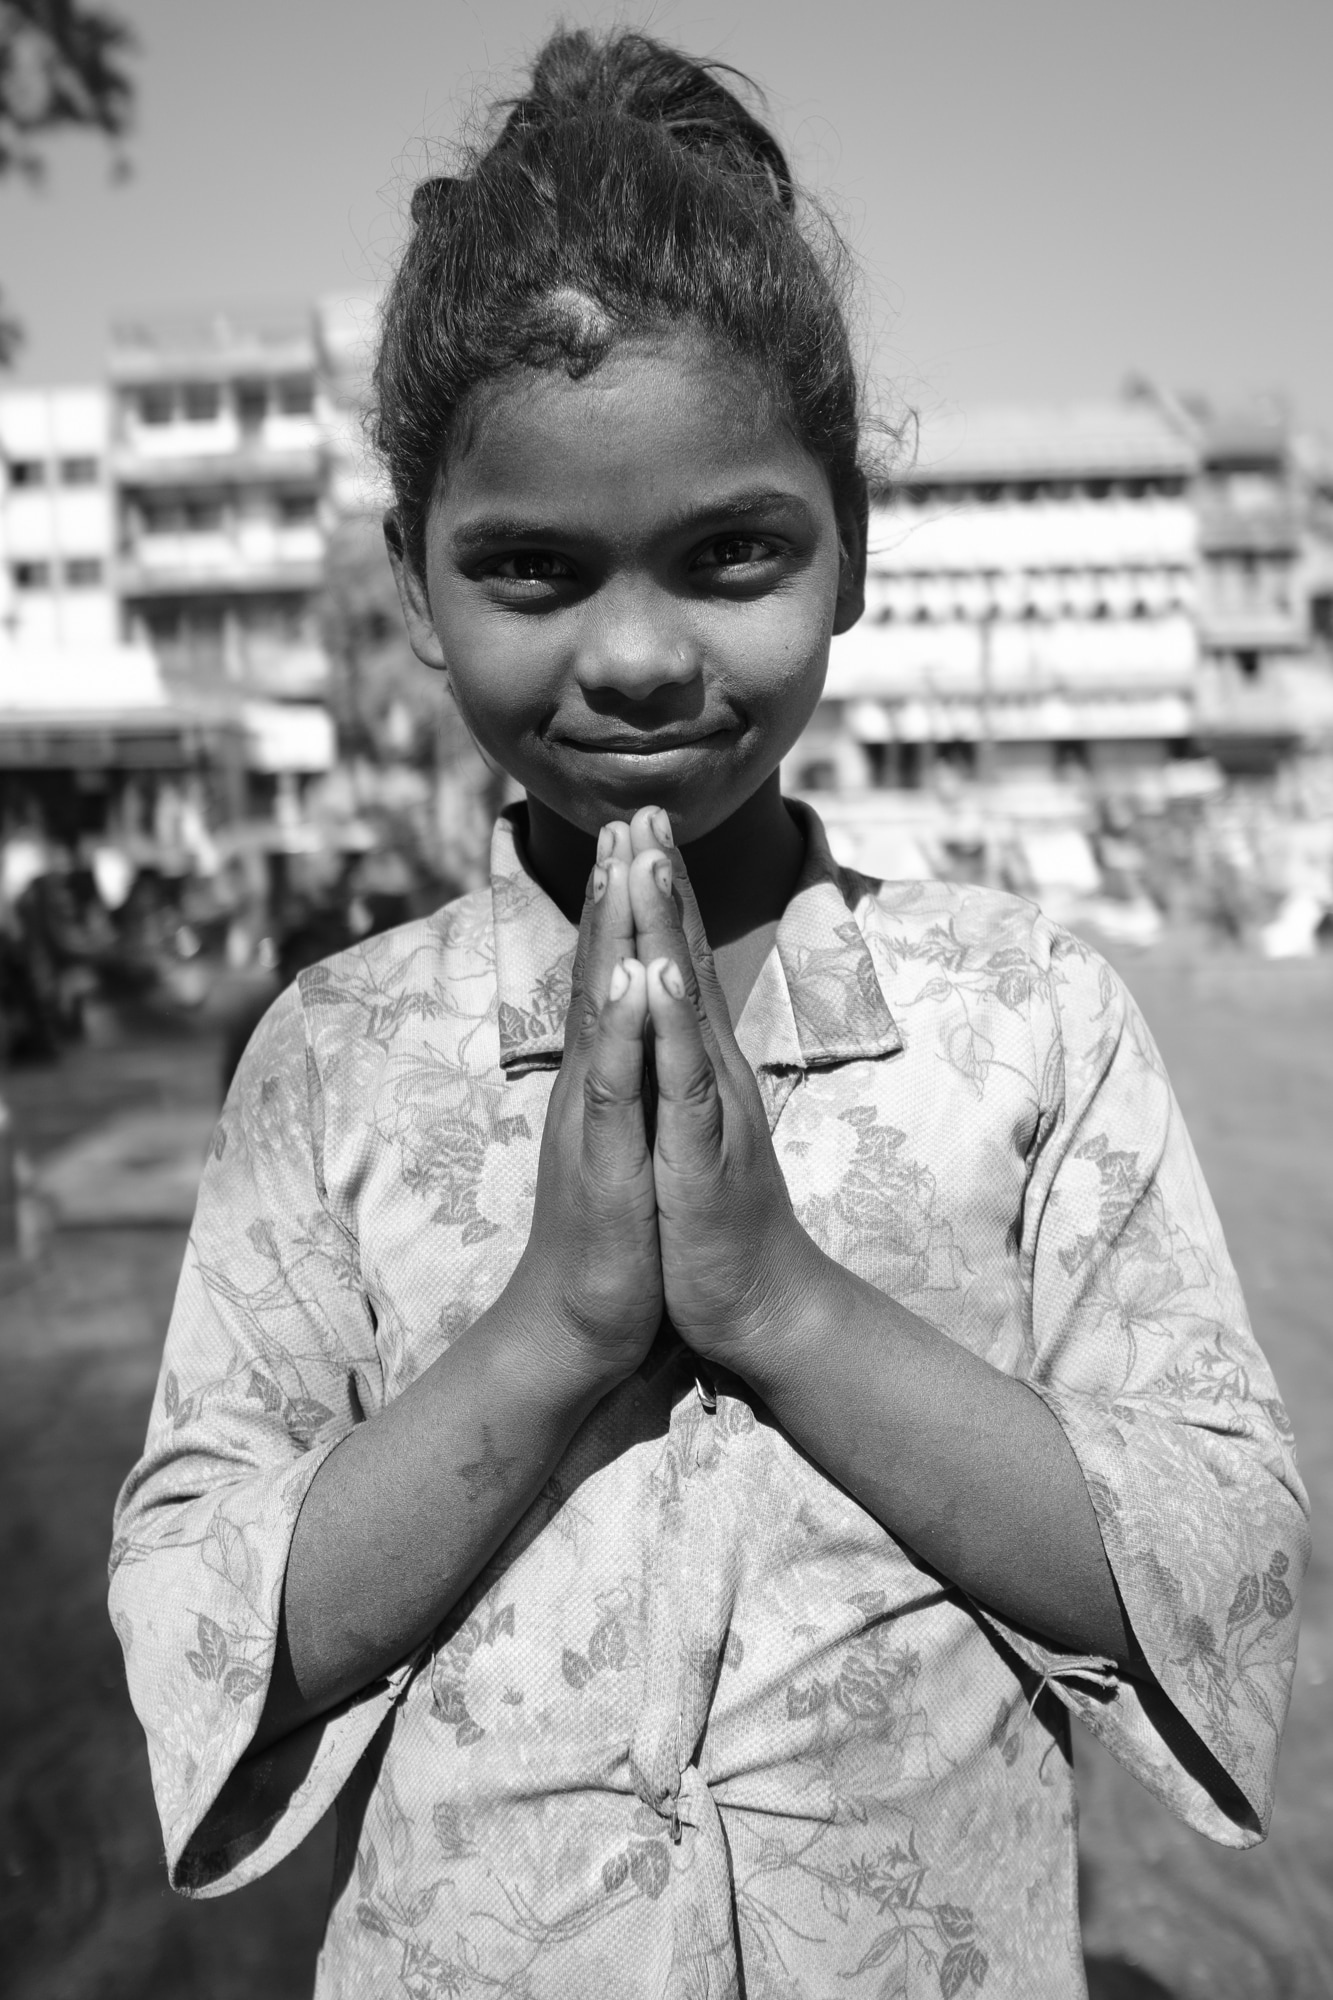 A girl poses with Namaste gesture